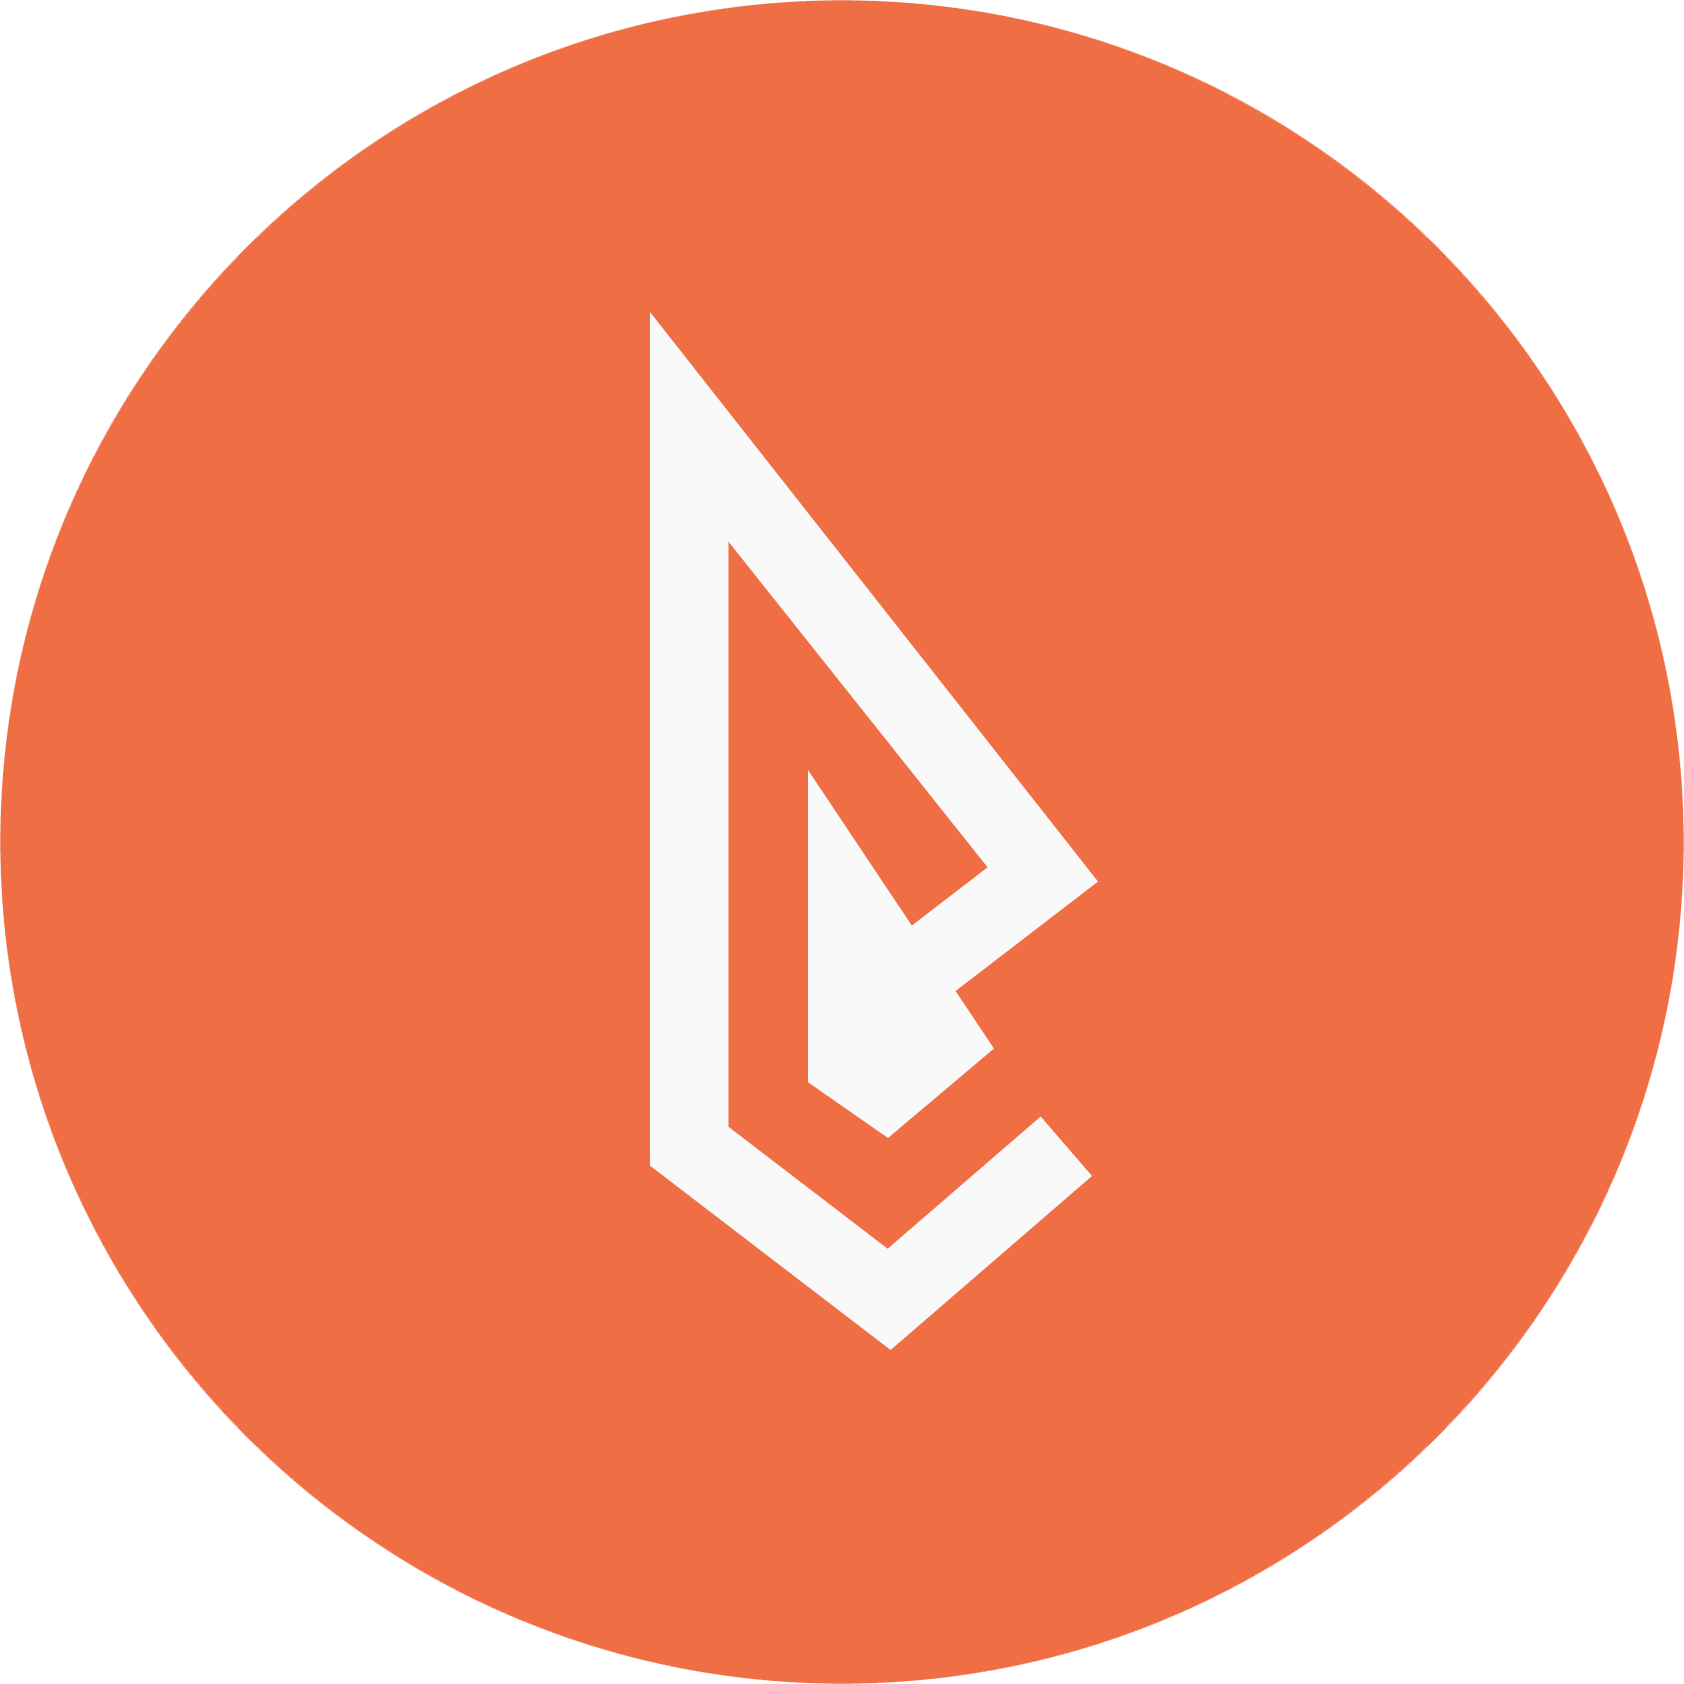 Large orange circle with a white arrowhead inside arrowhead based abstract design logo resembling letter e